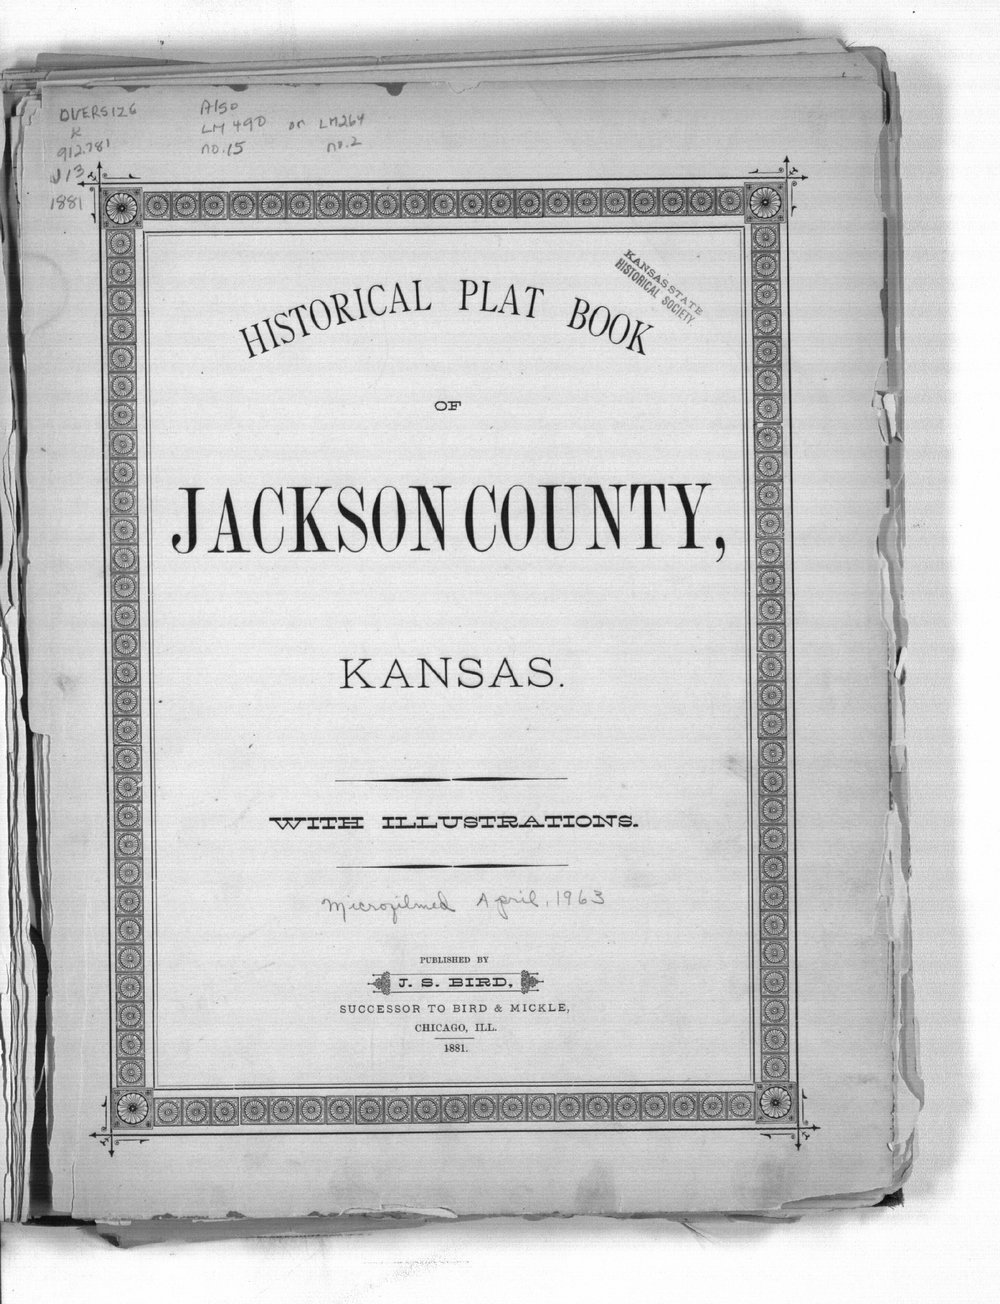 Historical Plat Book of Jackson County, Kansas - Title Page